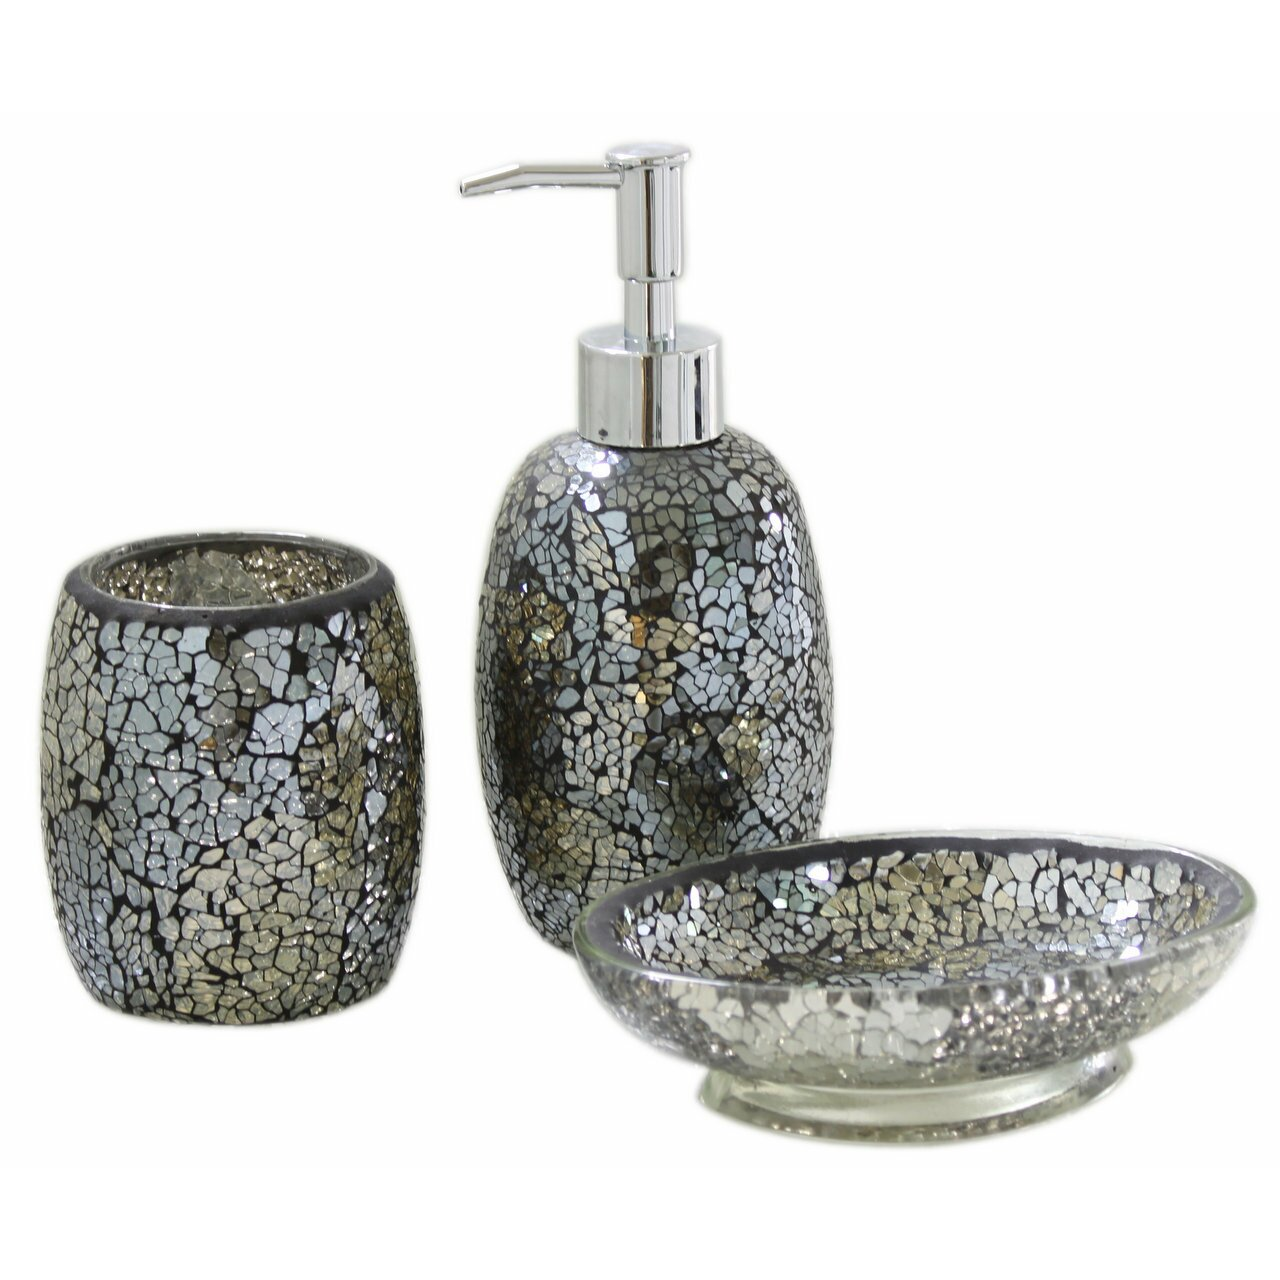 House additions mosaic bathroom accessory set reviews for Mosaic bathroom set